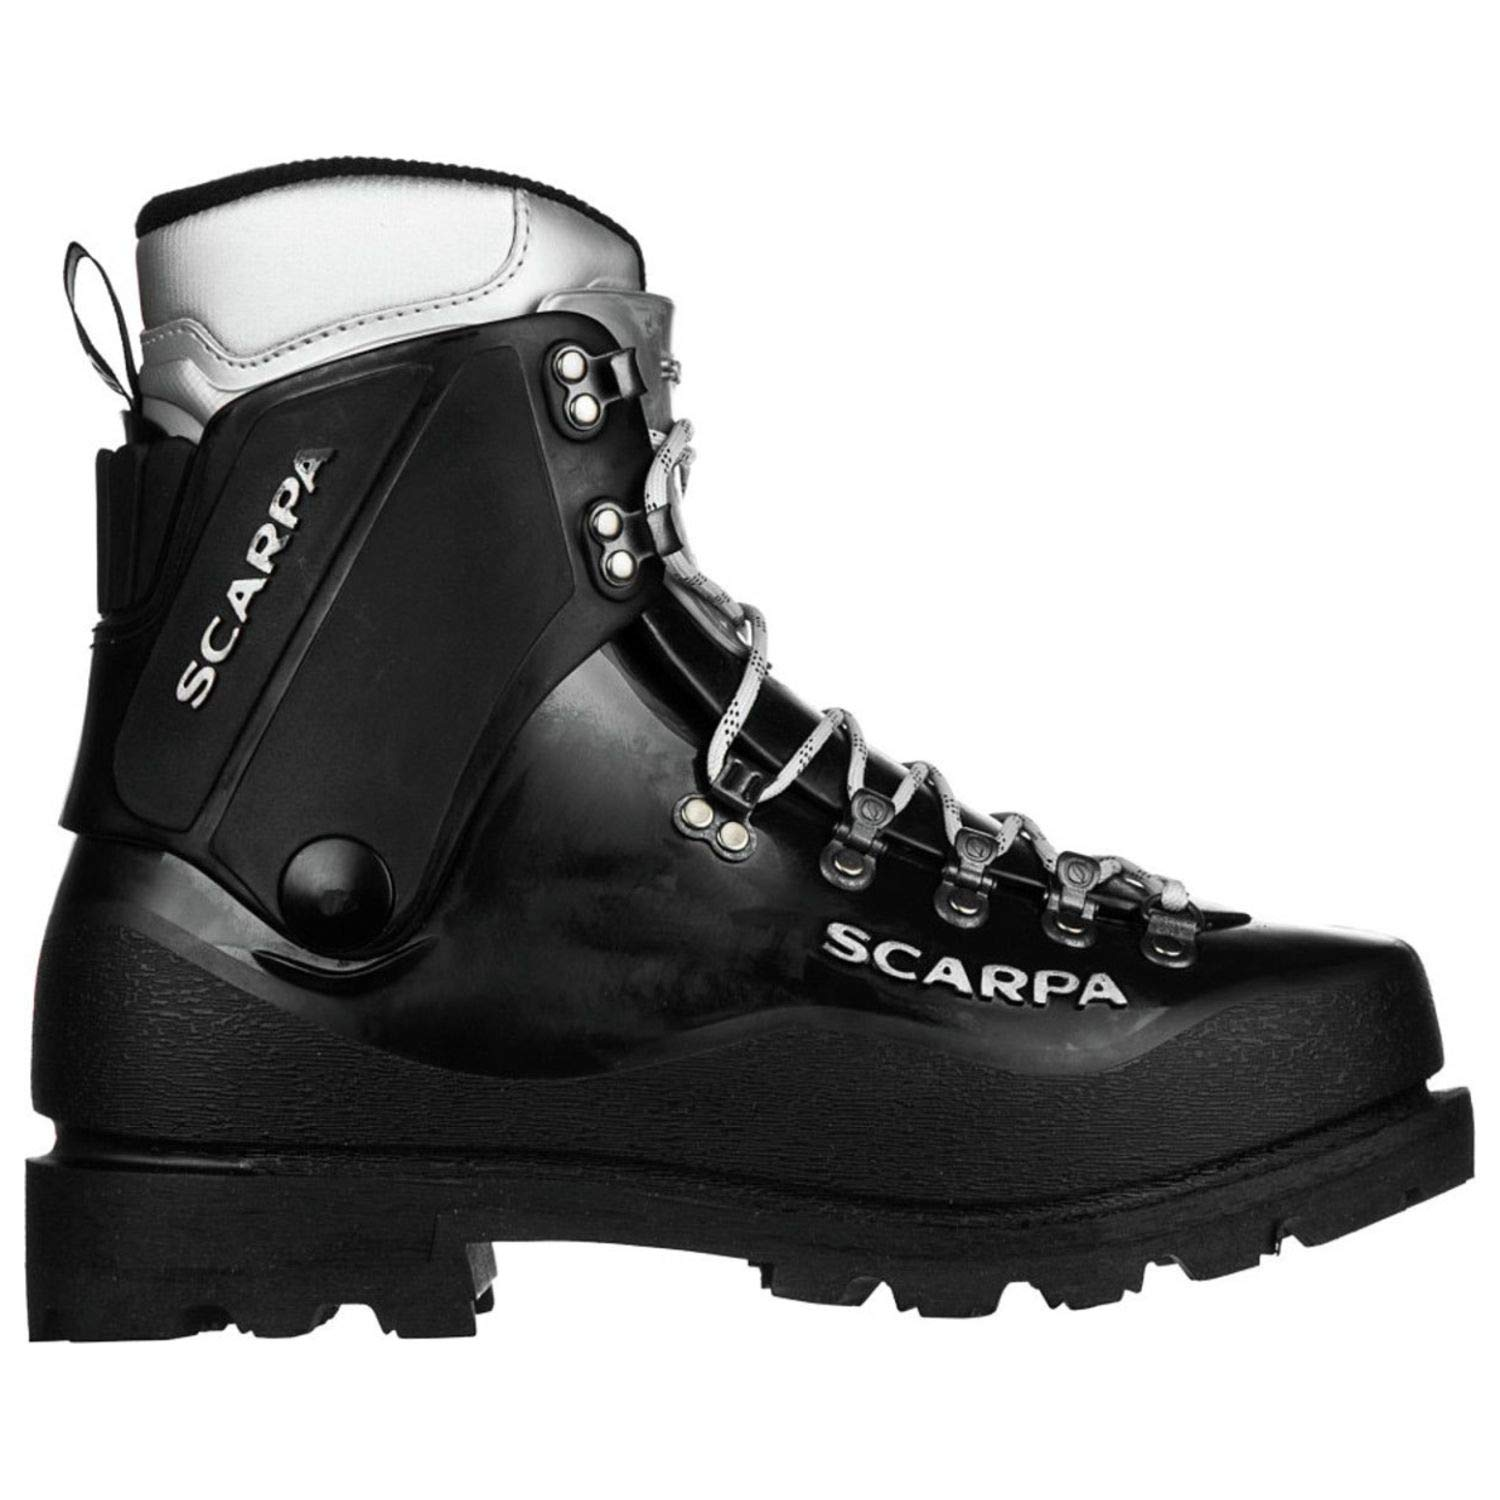 SCARPA Inverno Mountaineering Boot Black 10.5 by SCARPA